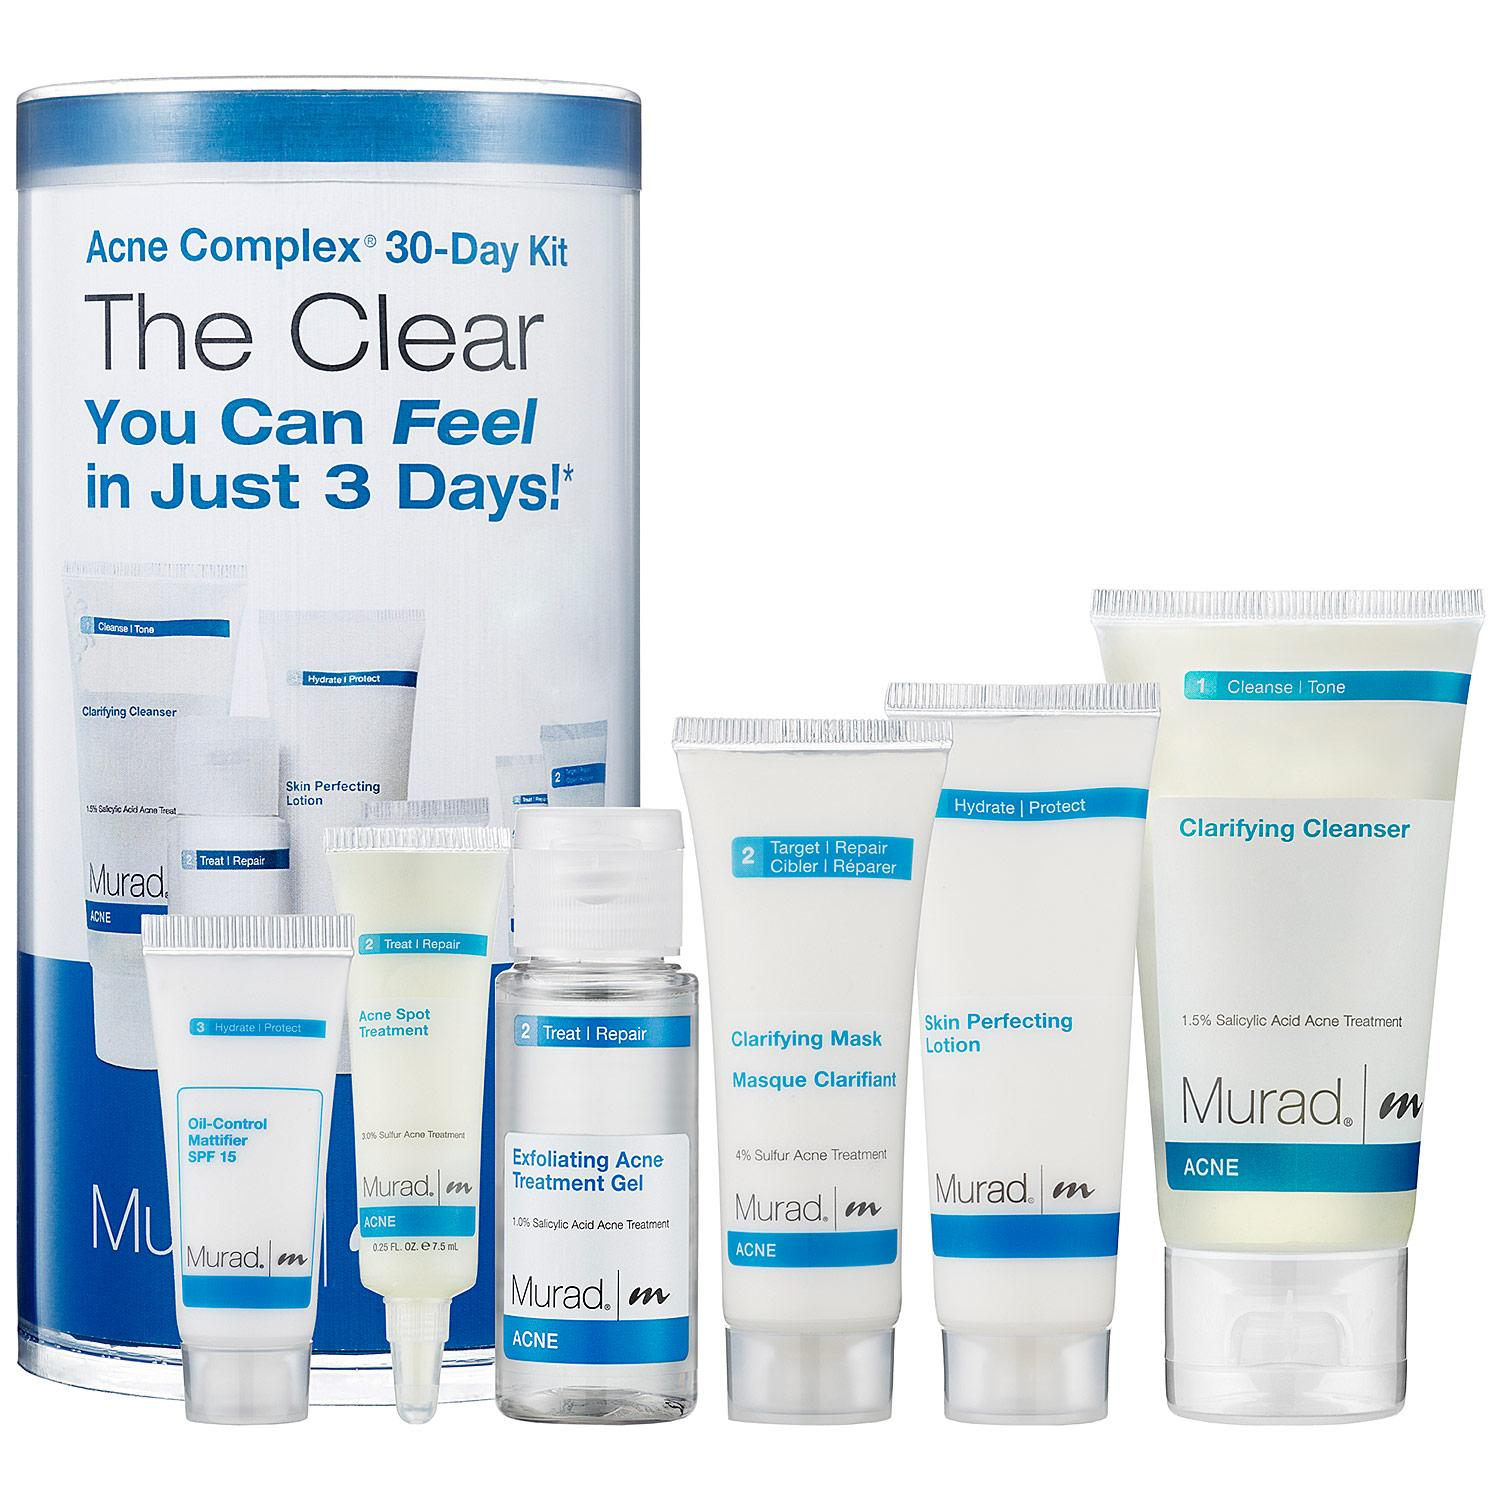 Acne Complex® 30-Day Kit